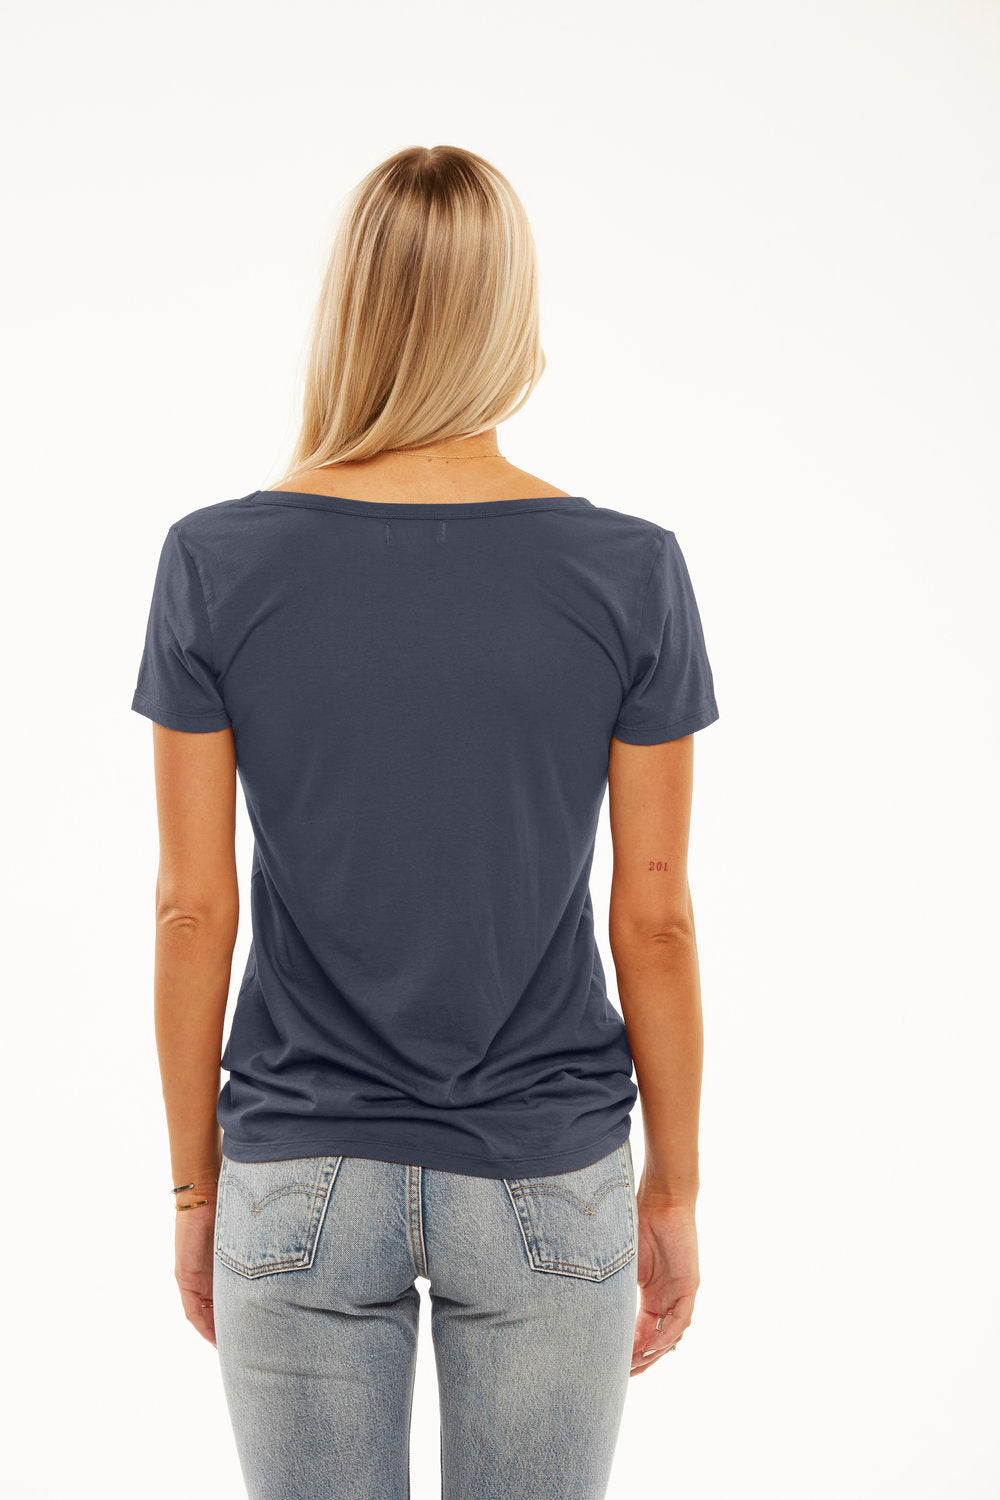 Cruz Deep V Boyfriend Tee in Polished Gray